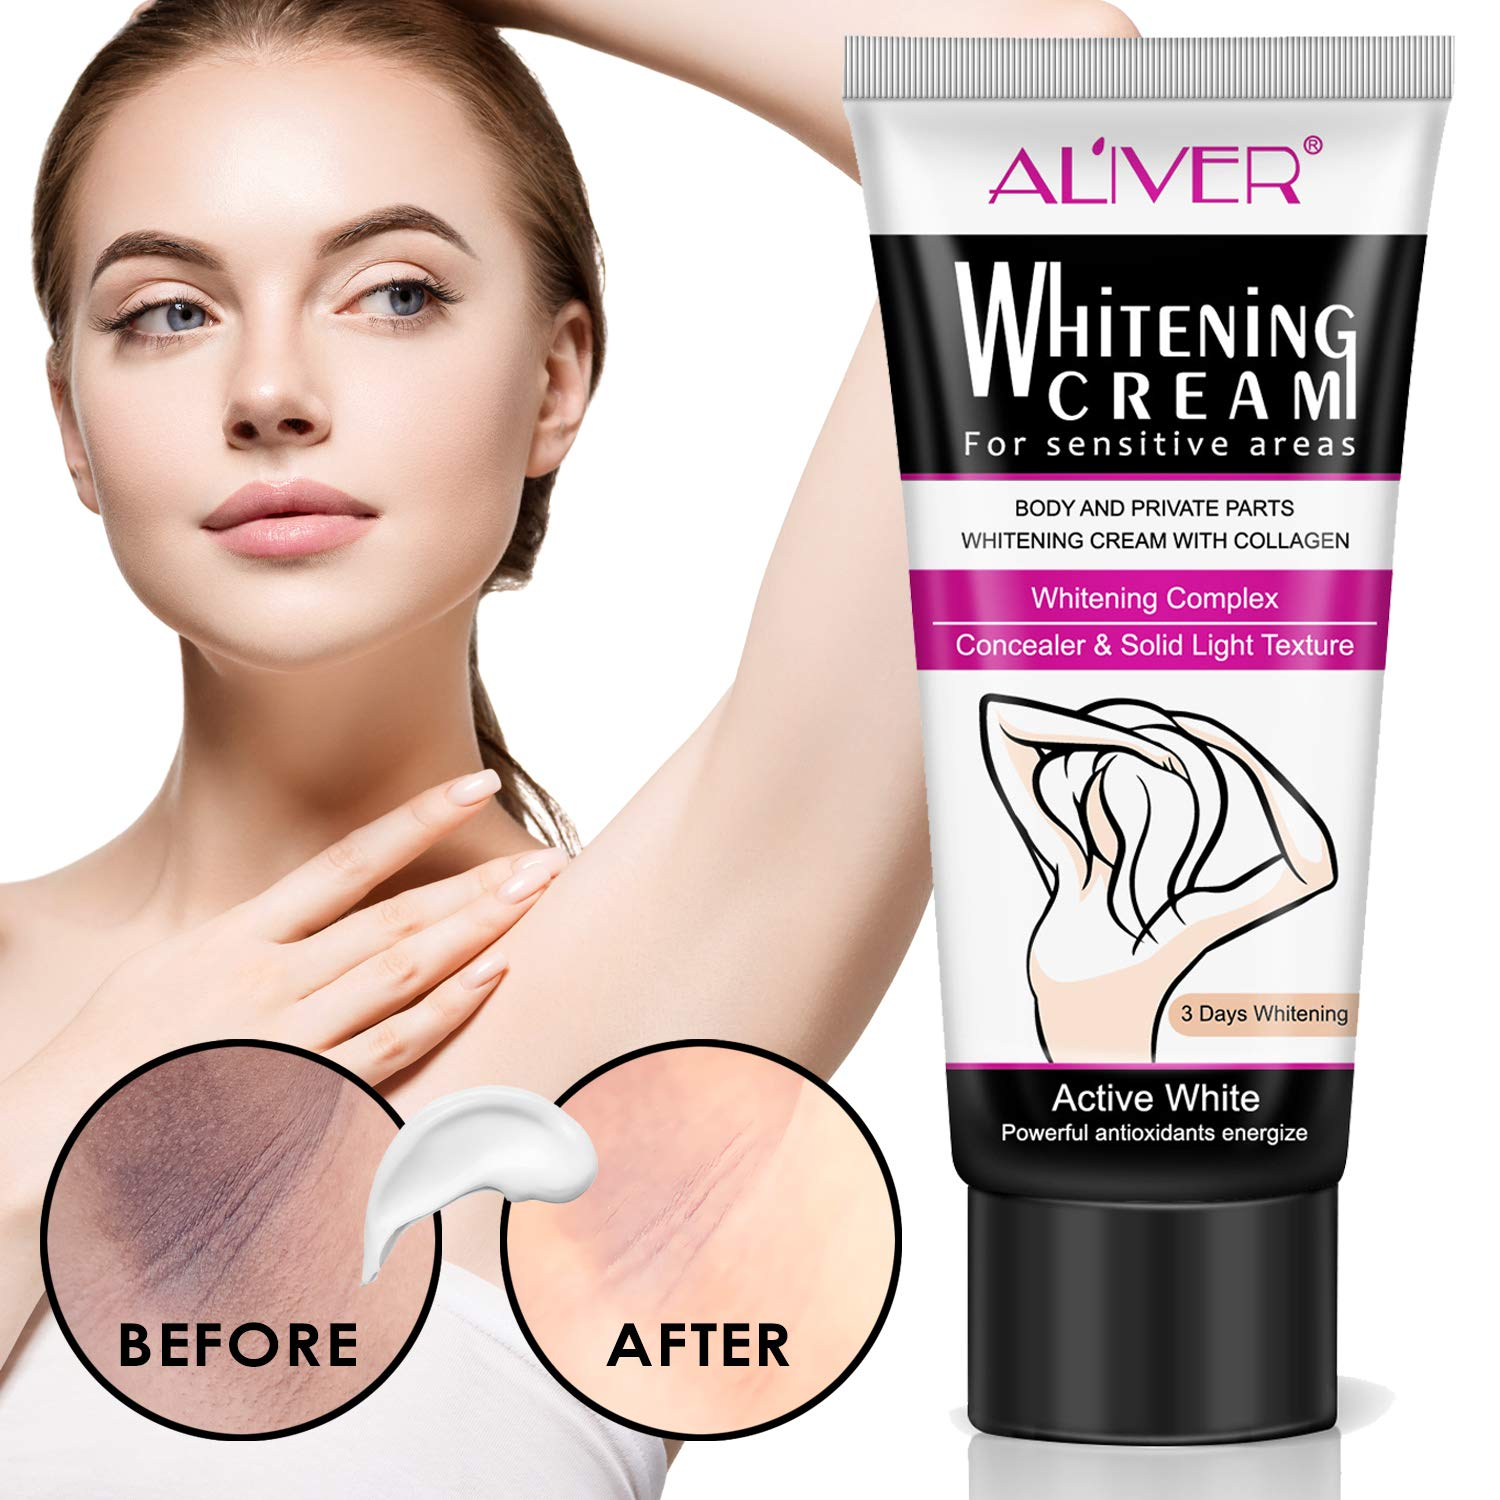 Underarm Whitening Cream,Lightening Cream Effective for Lightening & Brightening Armpit, Knees, Elbows, Sensitive & Private Areas, Whitens, Nourishes, Repairs & Restores Skin 60ml